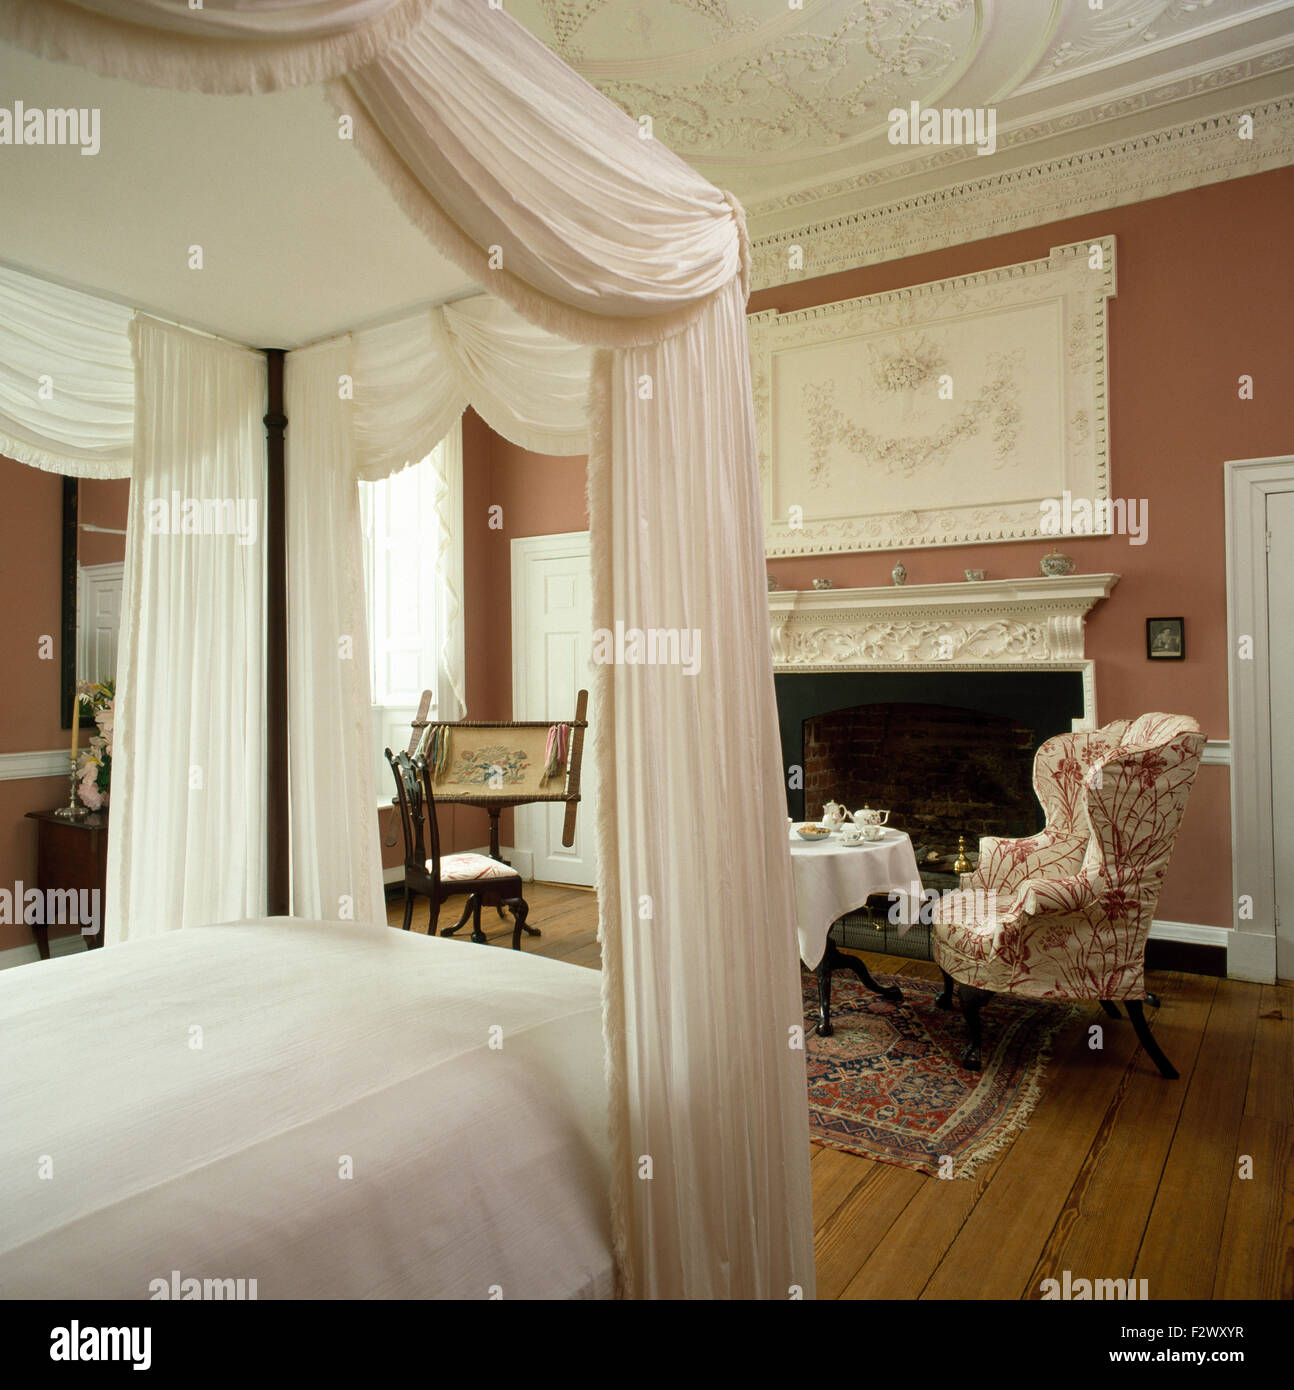 Four poster bed with curtains stock photos four poster bed with curtains stock images alamy - Four poster bed curtains ...